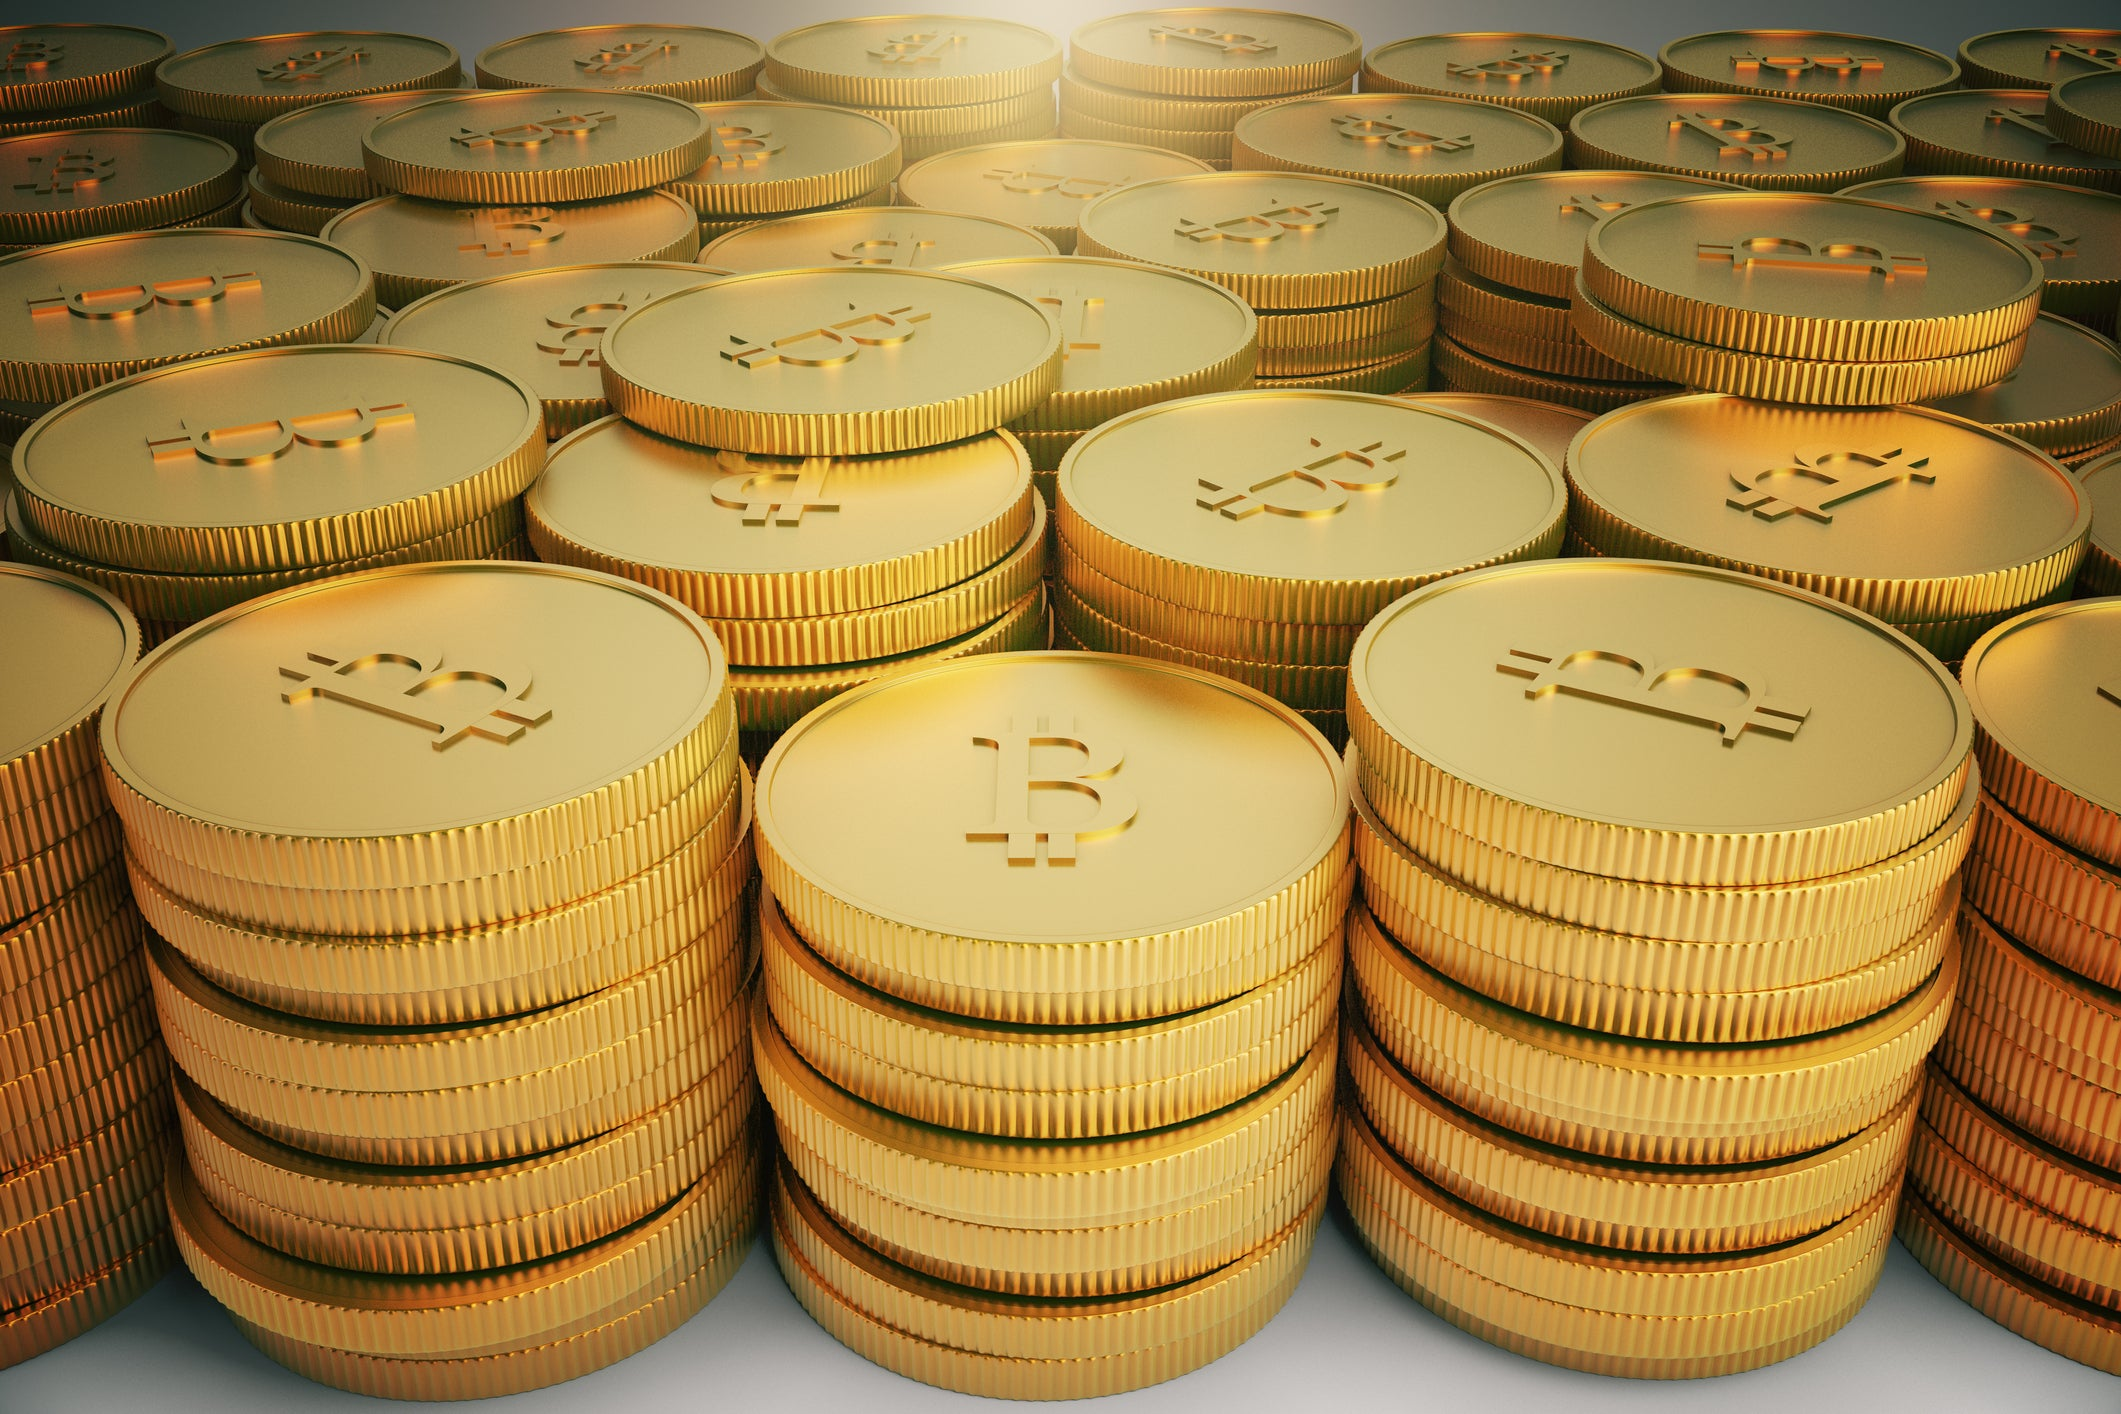 4 Bitcoin Stocks I'd Avoid at All Costs -- and How to ...